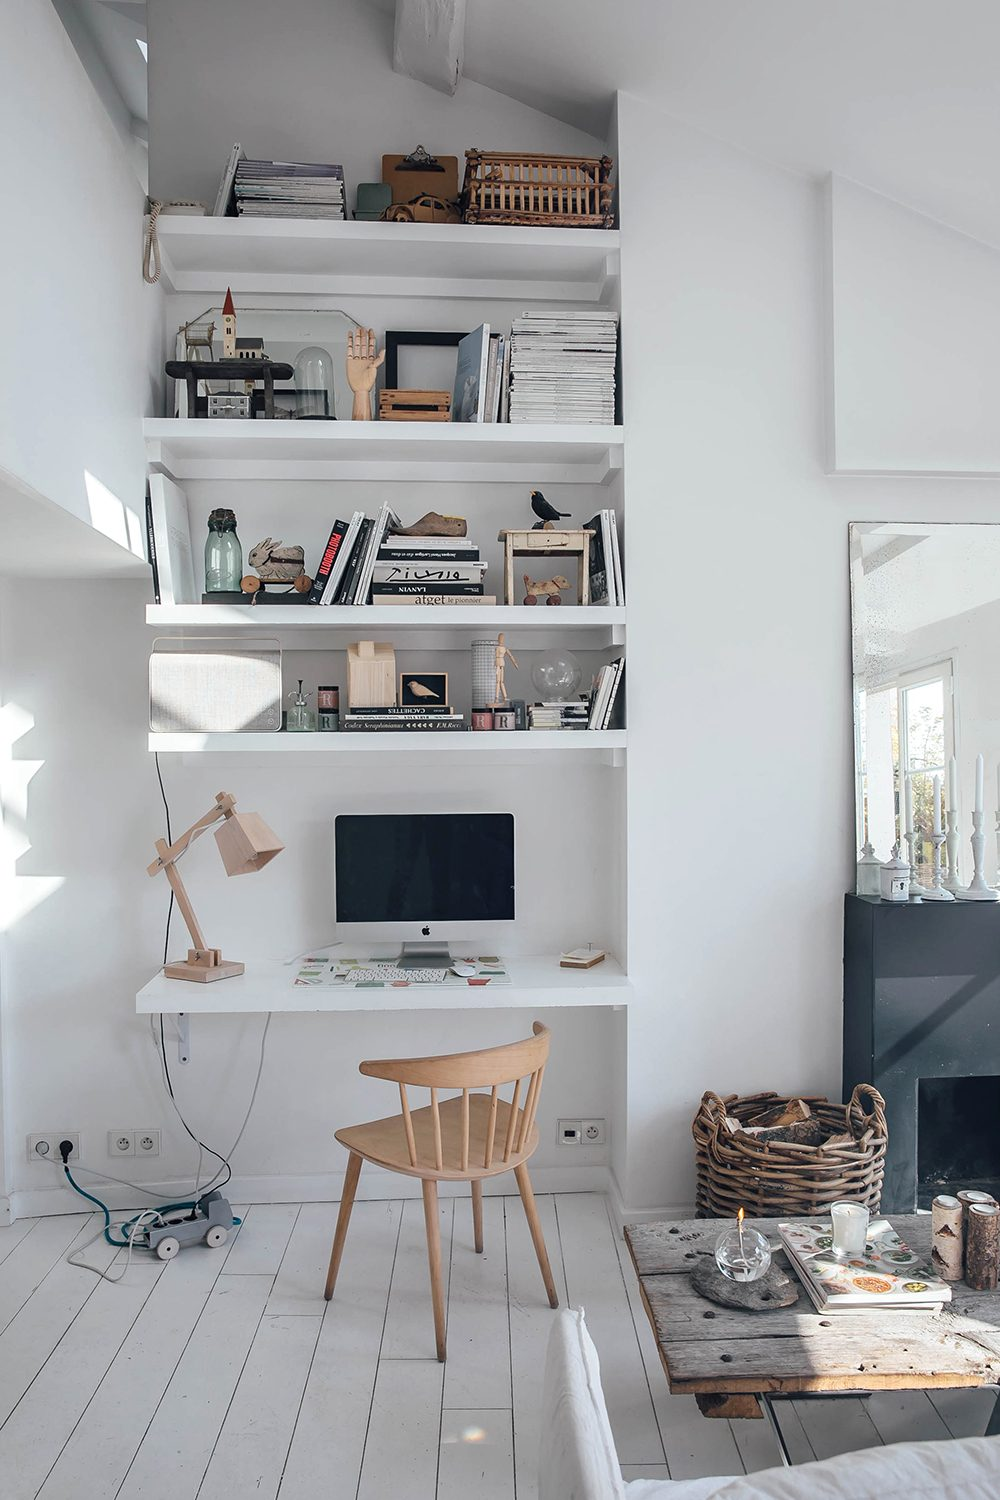 Home Tour Zoe de Las Cases Paris 22